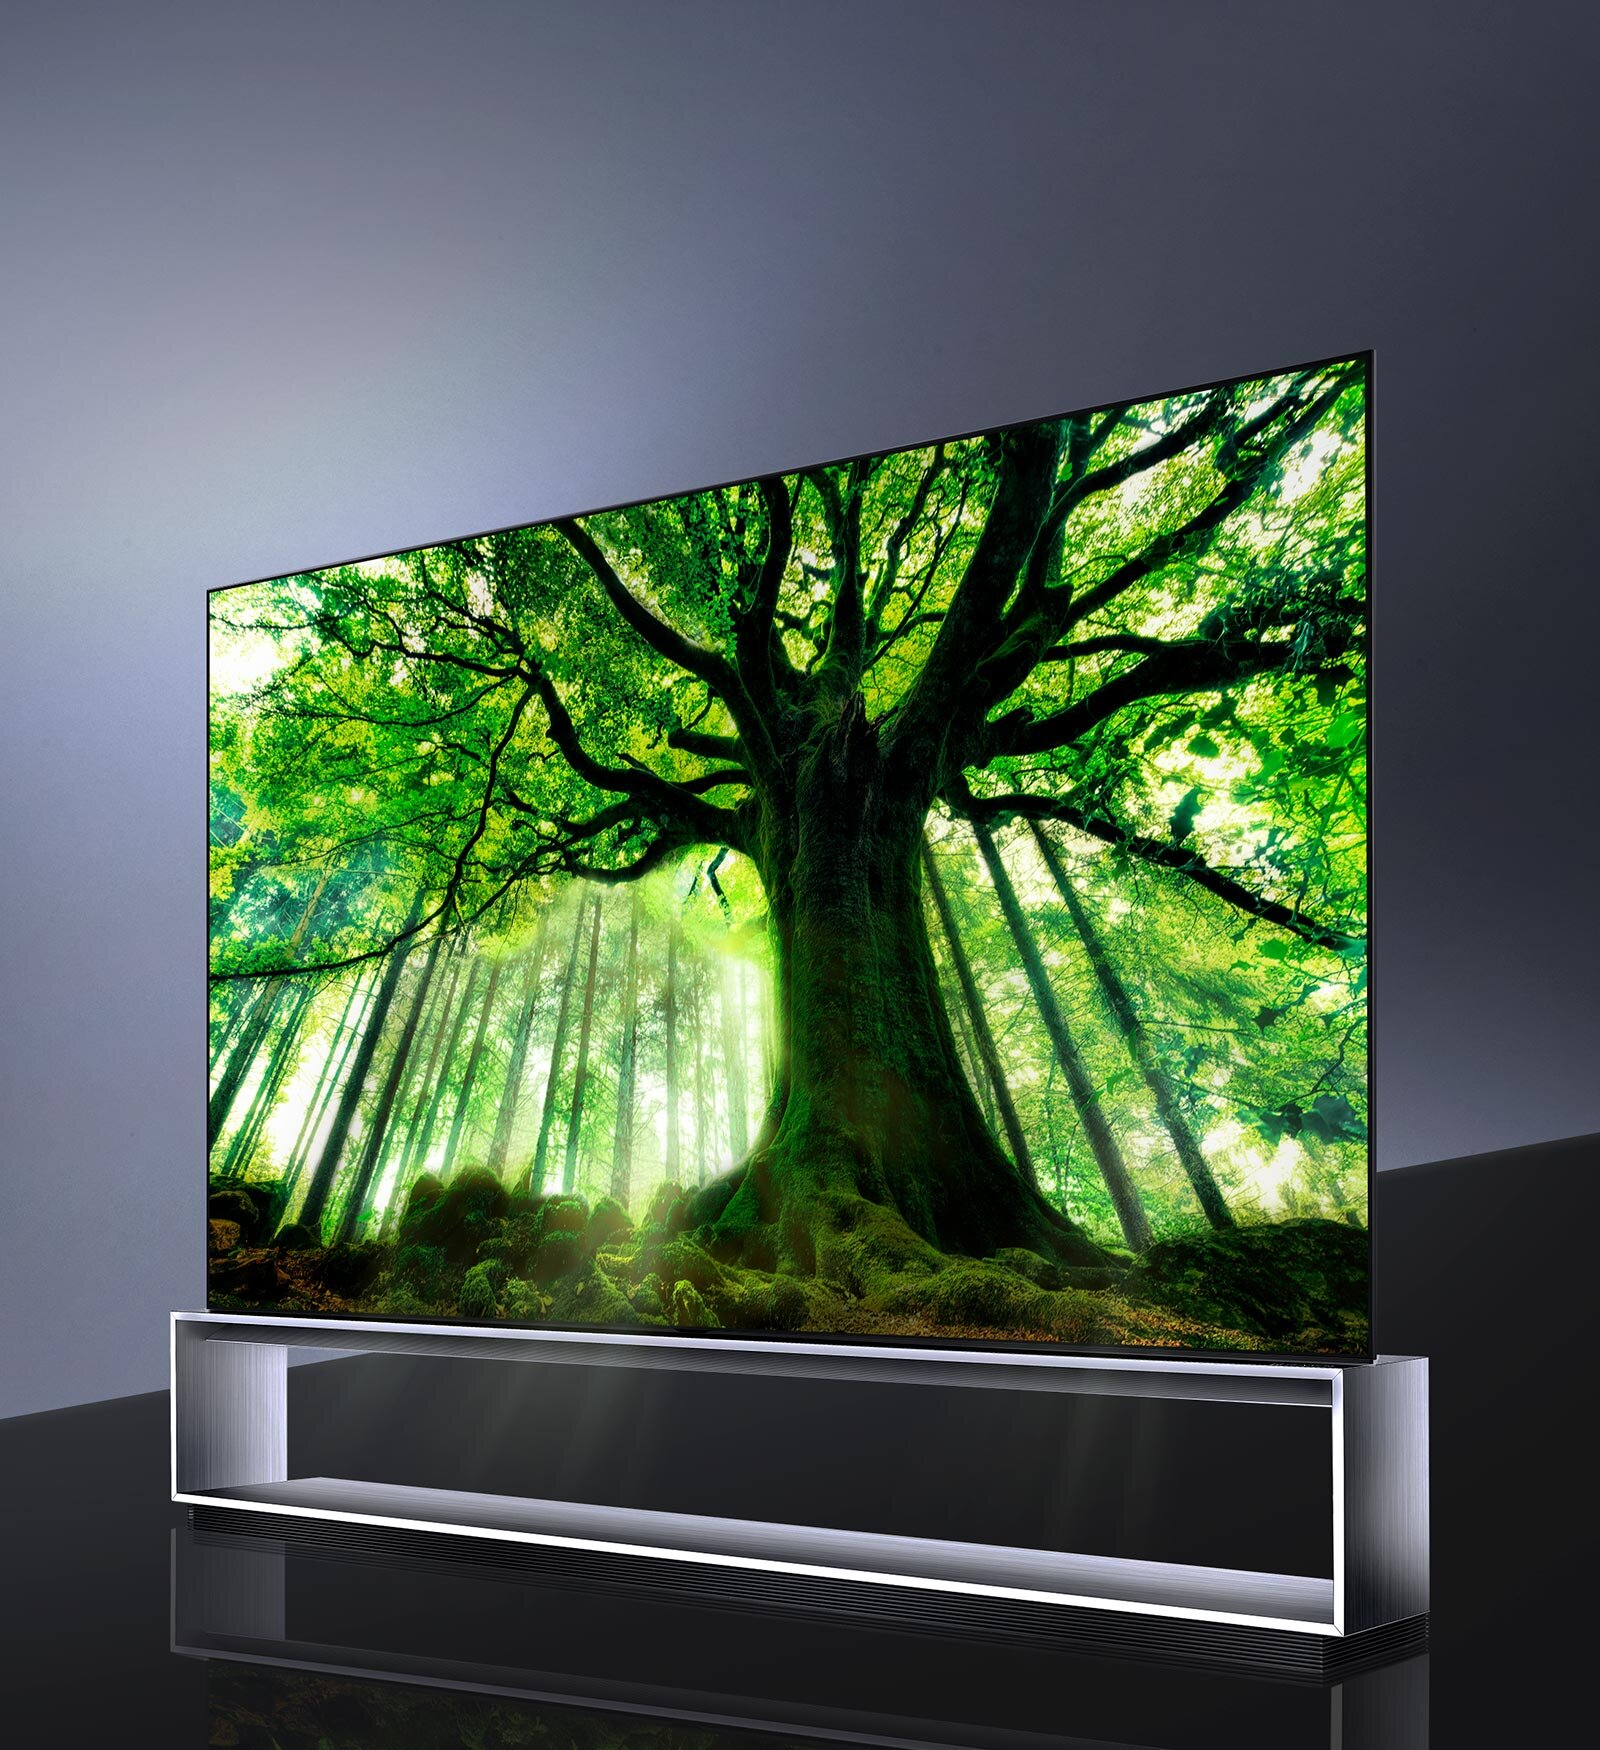 LG OLED Takes 8K to New Levels - The world's first LG OLED 8K TV delivers more colour, depth, and detail than ever before, all on an ultra-large 88-inch screen. It's a viewing experience like no other, with LG's OLED display technology creating an unparalleled level of 8K. Let OLED 8K transport you to a new, vivid world of TV.